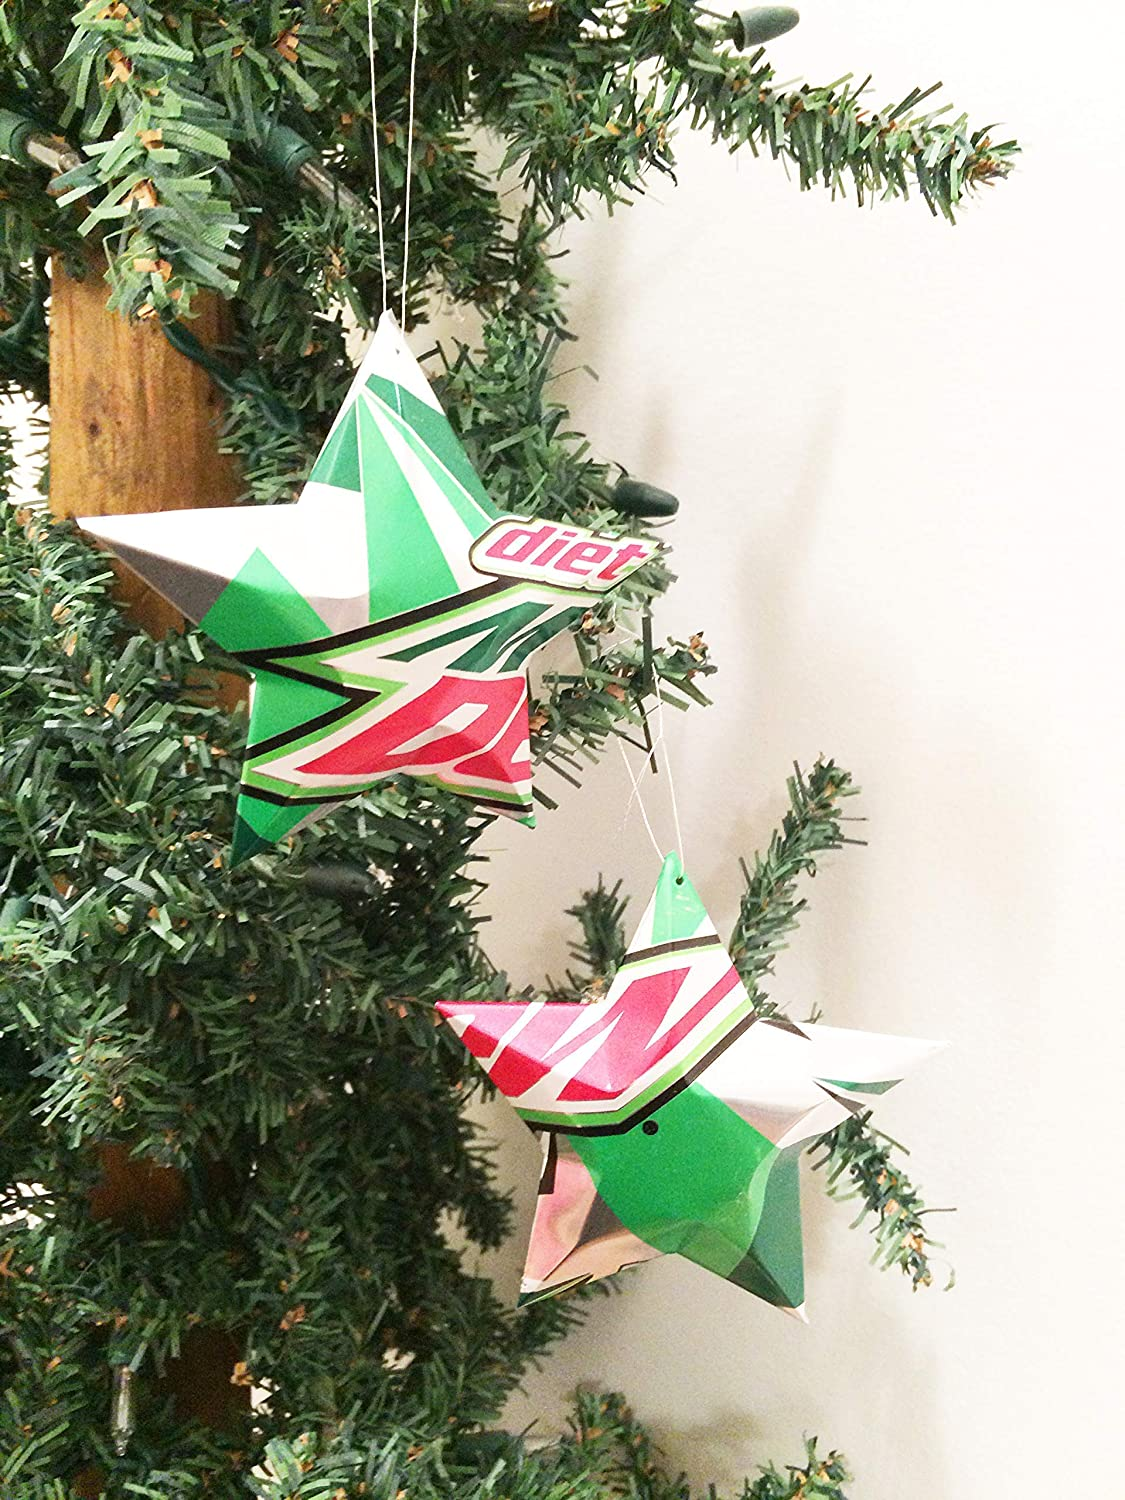 MOUNTAIN DEW Christmas Ornament Recycled Soda Can Art.